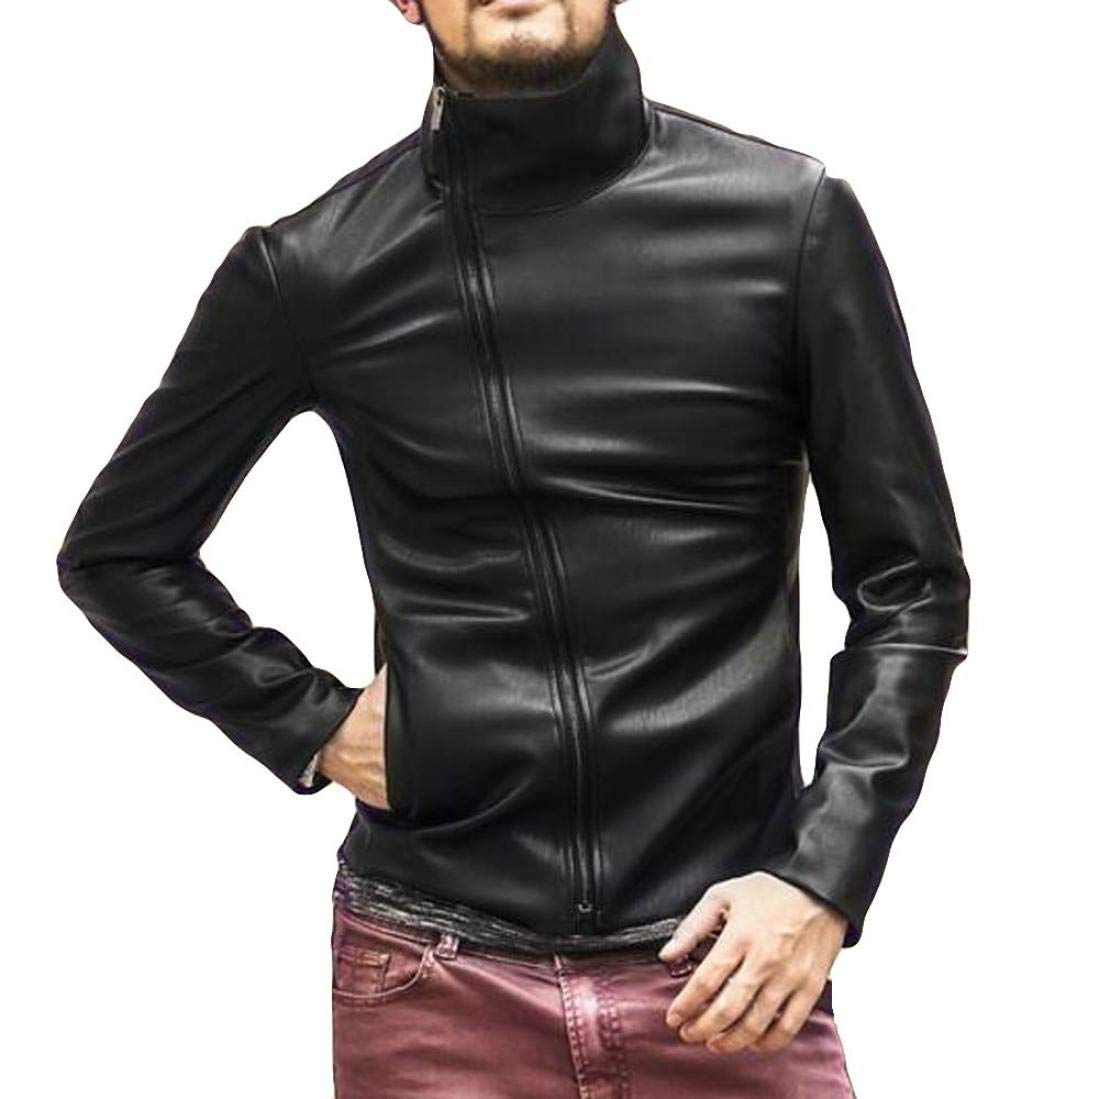 Zainafacai Men's Coat, Slim Fit Faux Leather Jacket Motorcycle Bomber Stand Collar Outwear (Black, L)